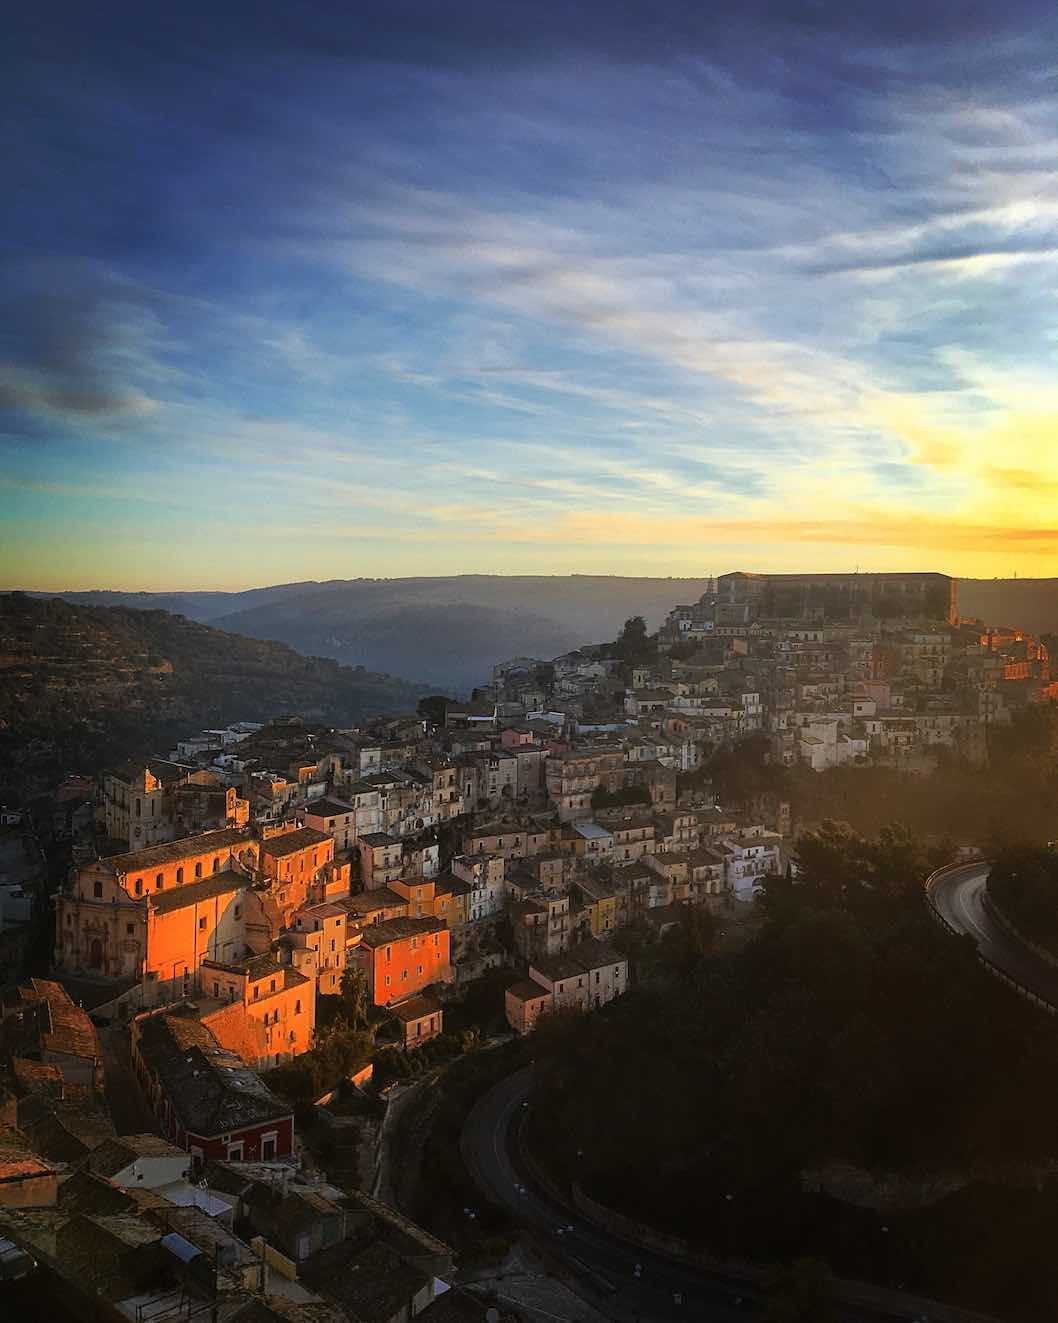 Daylight breaks over Ragusa Ibla, a Baroque town and UNESCO World Heritage Site